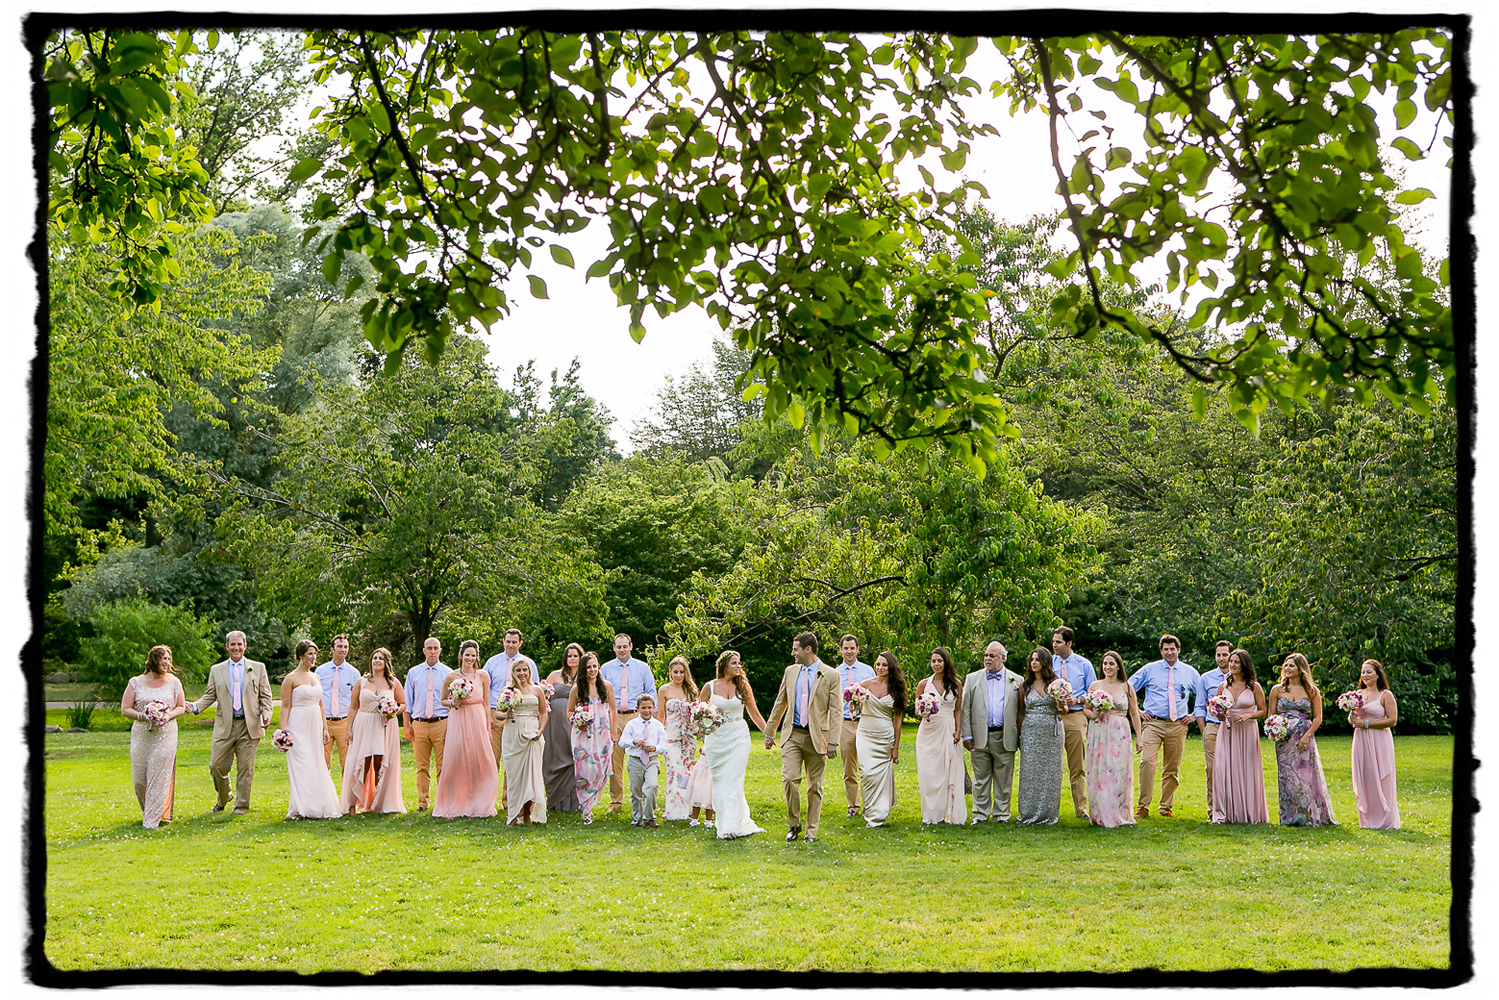 Rorie & Adam's wedding party in summer hues  take a stroll at The Brooklyn Botanic Garden.